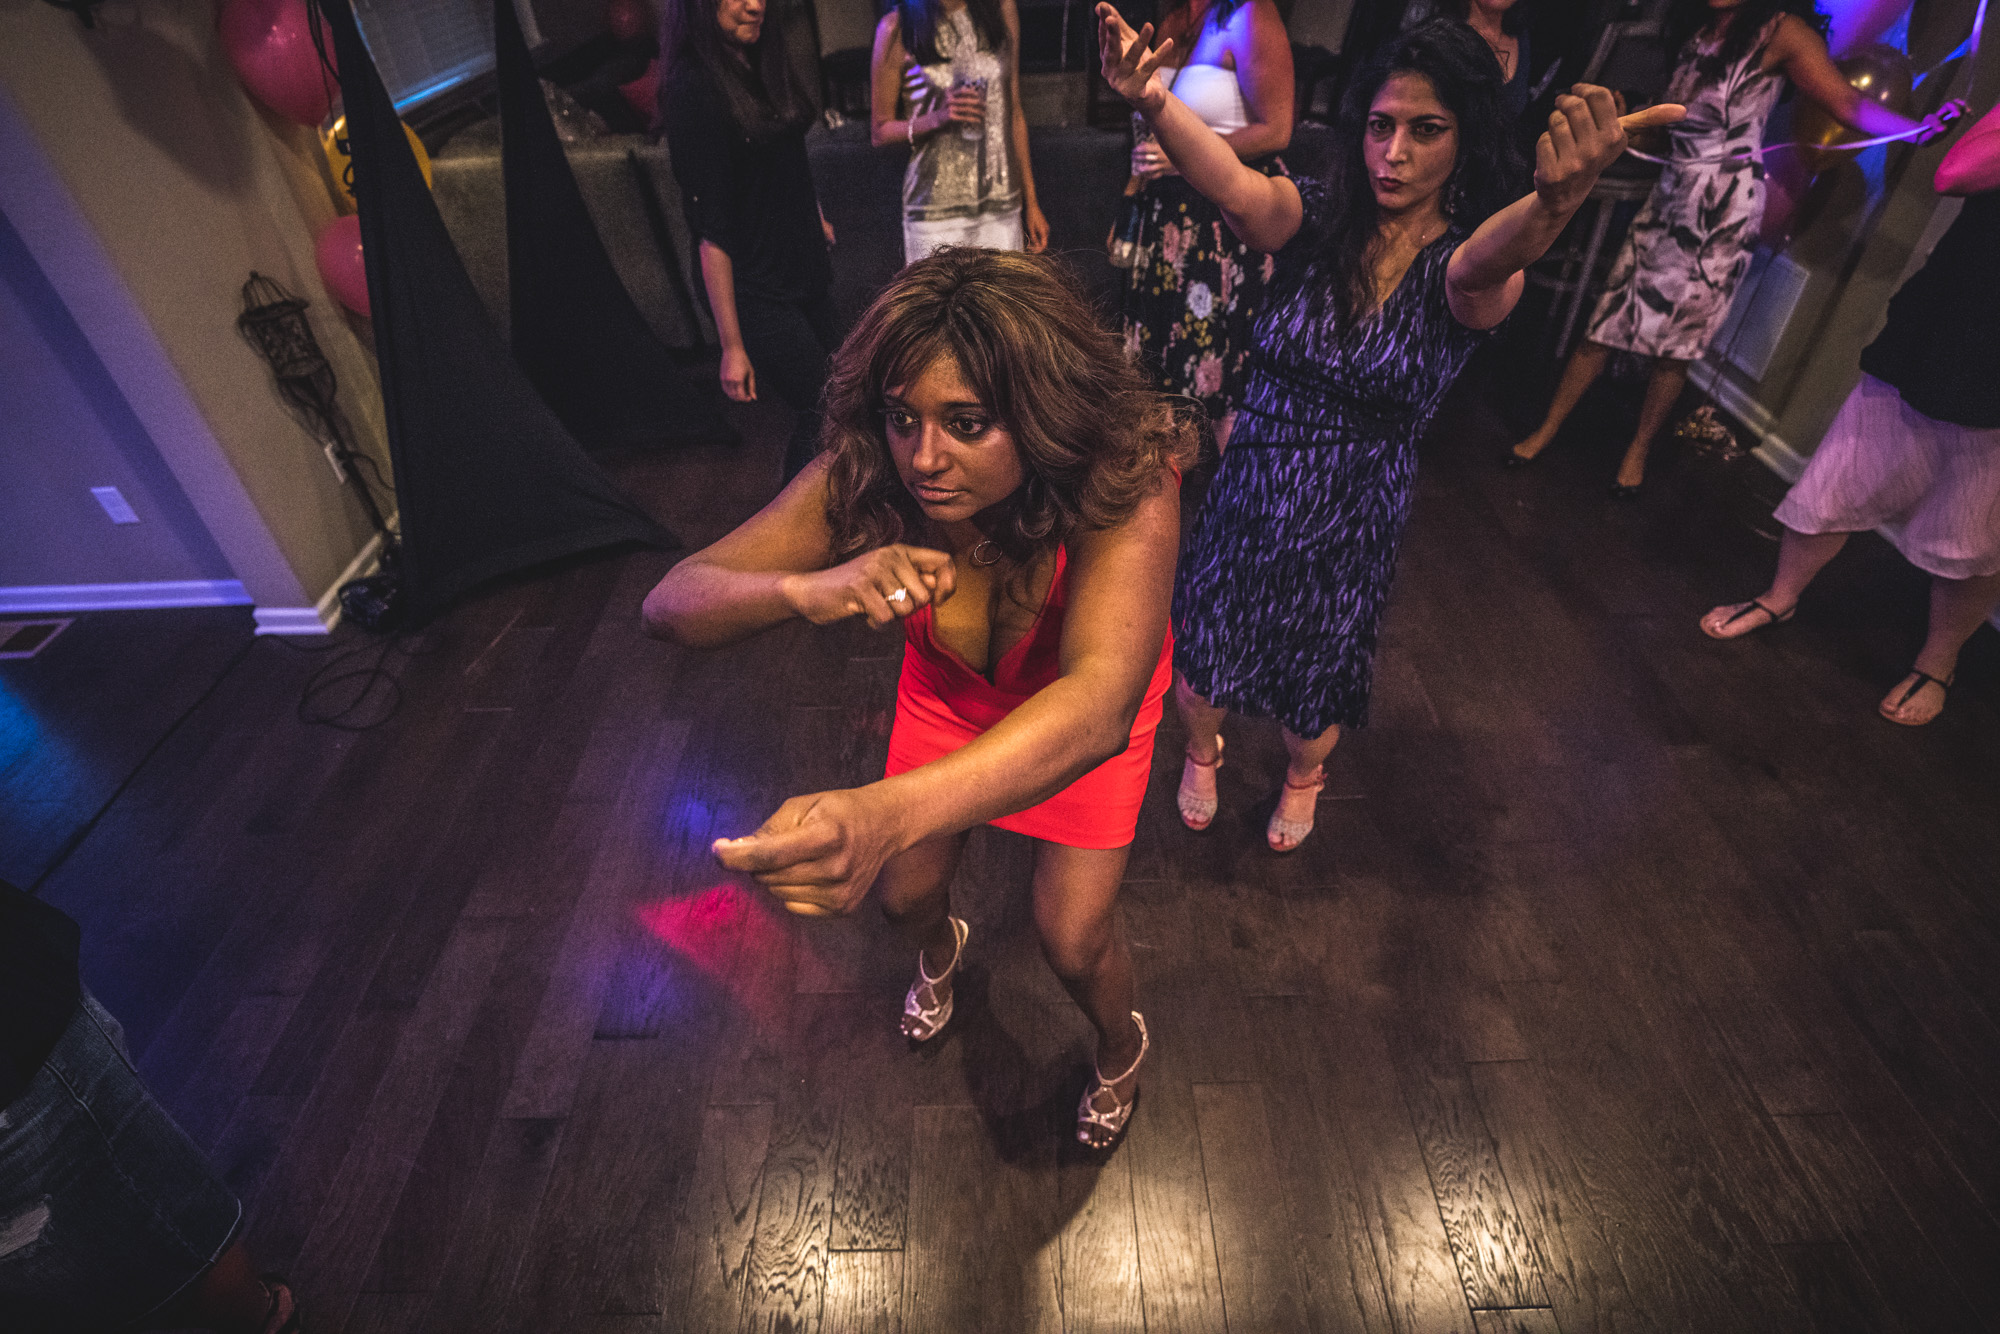 Two women in dresses dance crazily on a dance floor at a house party in Denver, Colorado